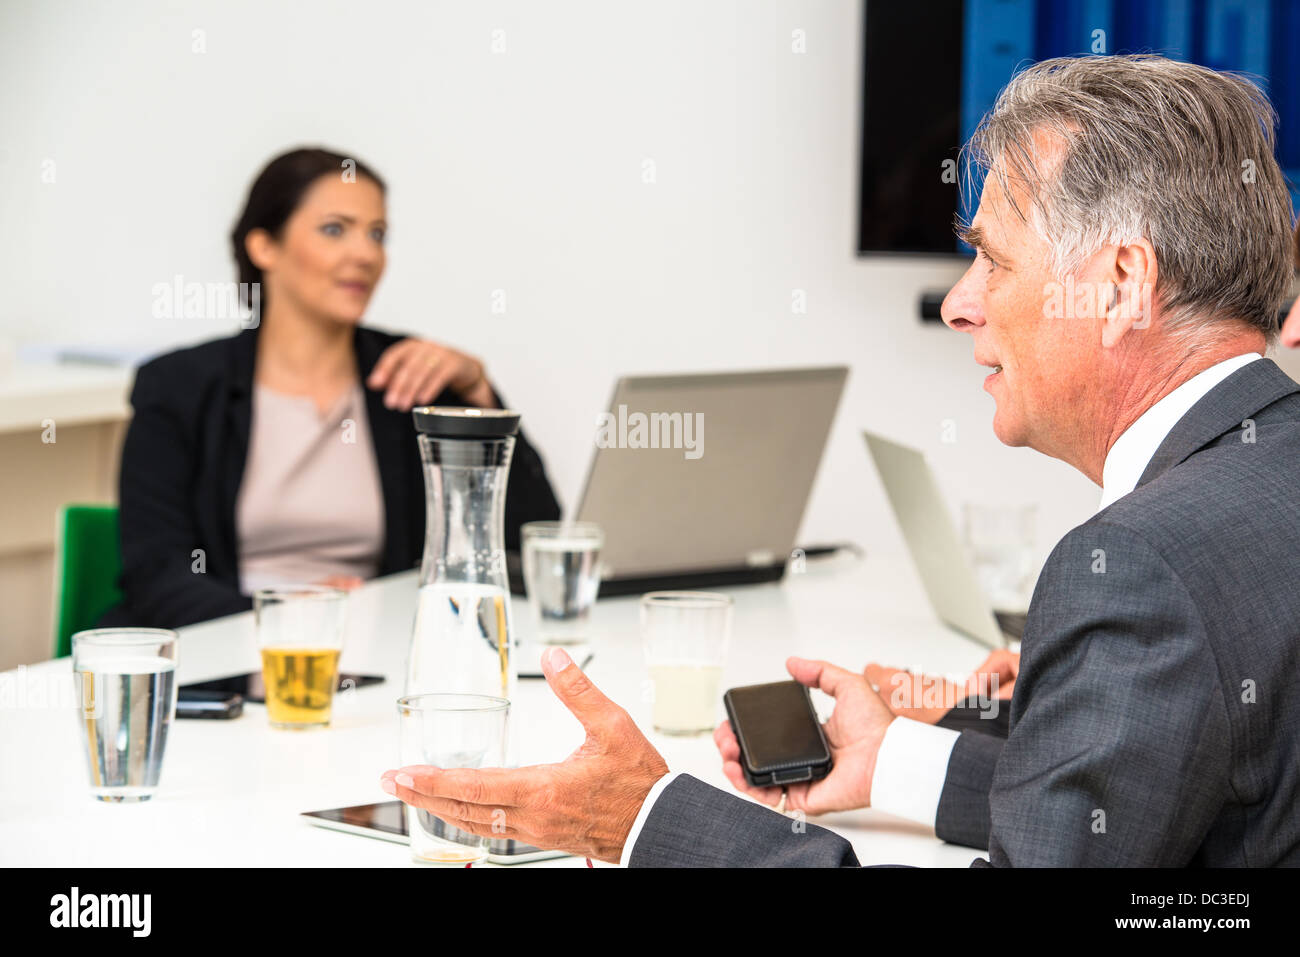 Mixed group in business meeting with laptops, projection screen, digital tablets and smartphones discussing the - Stock Image